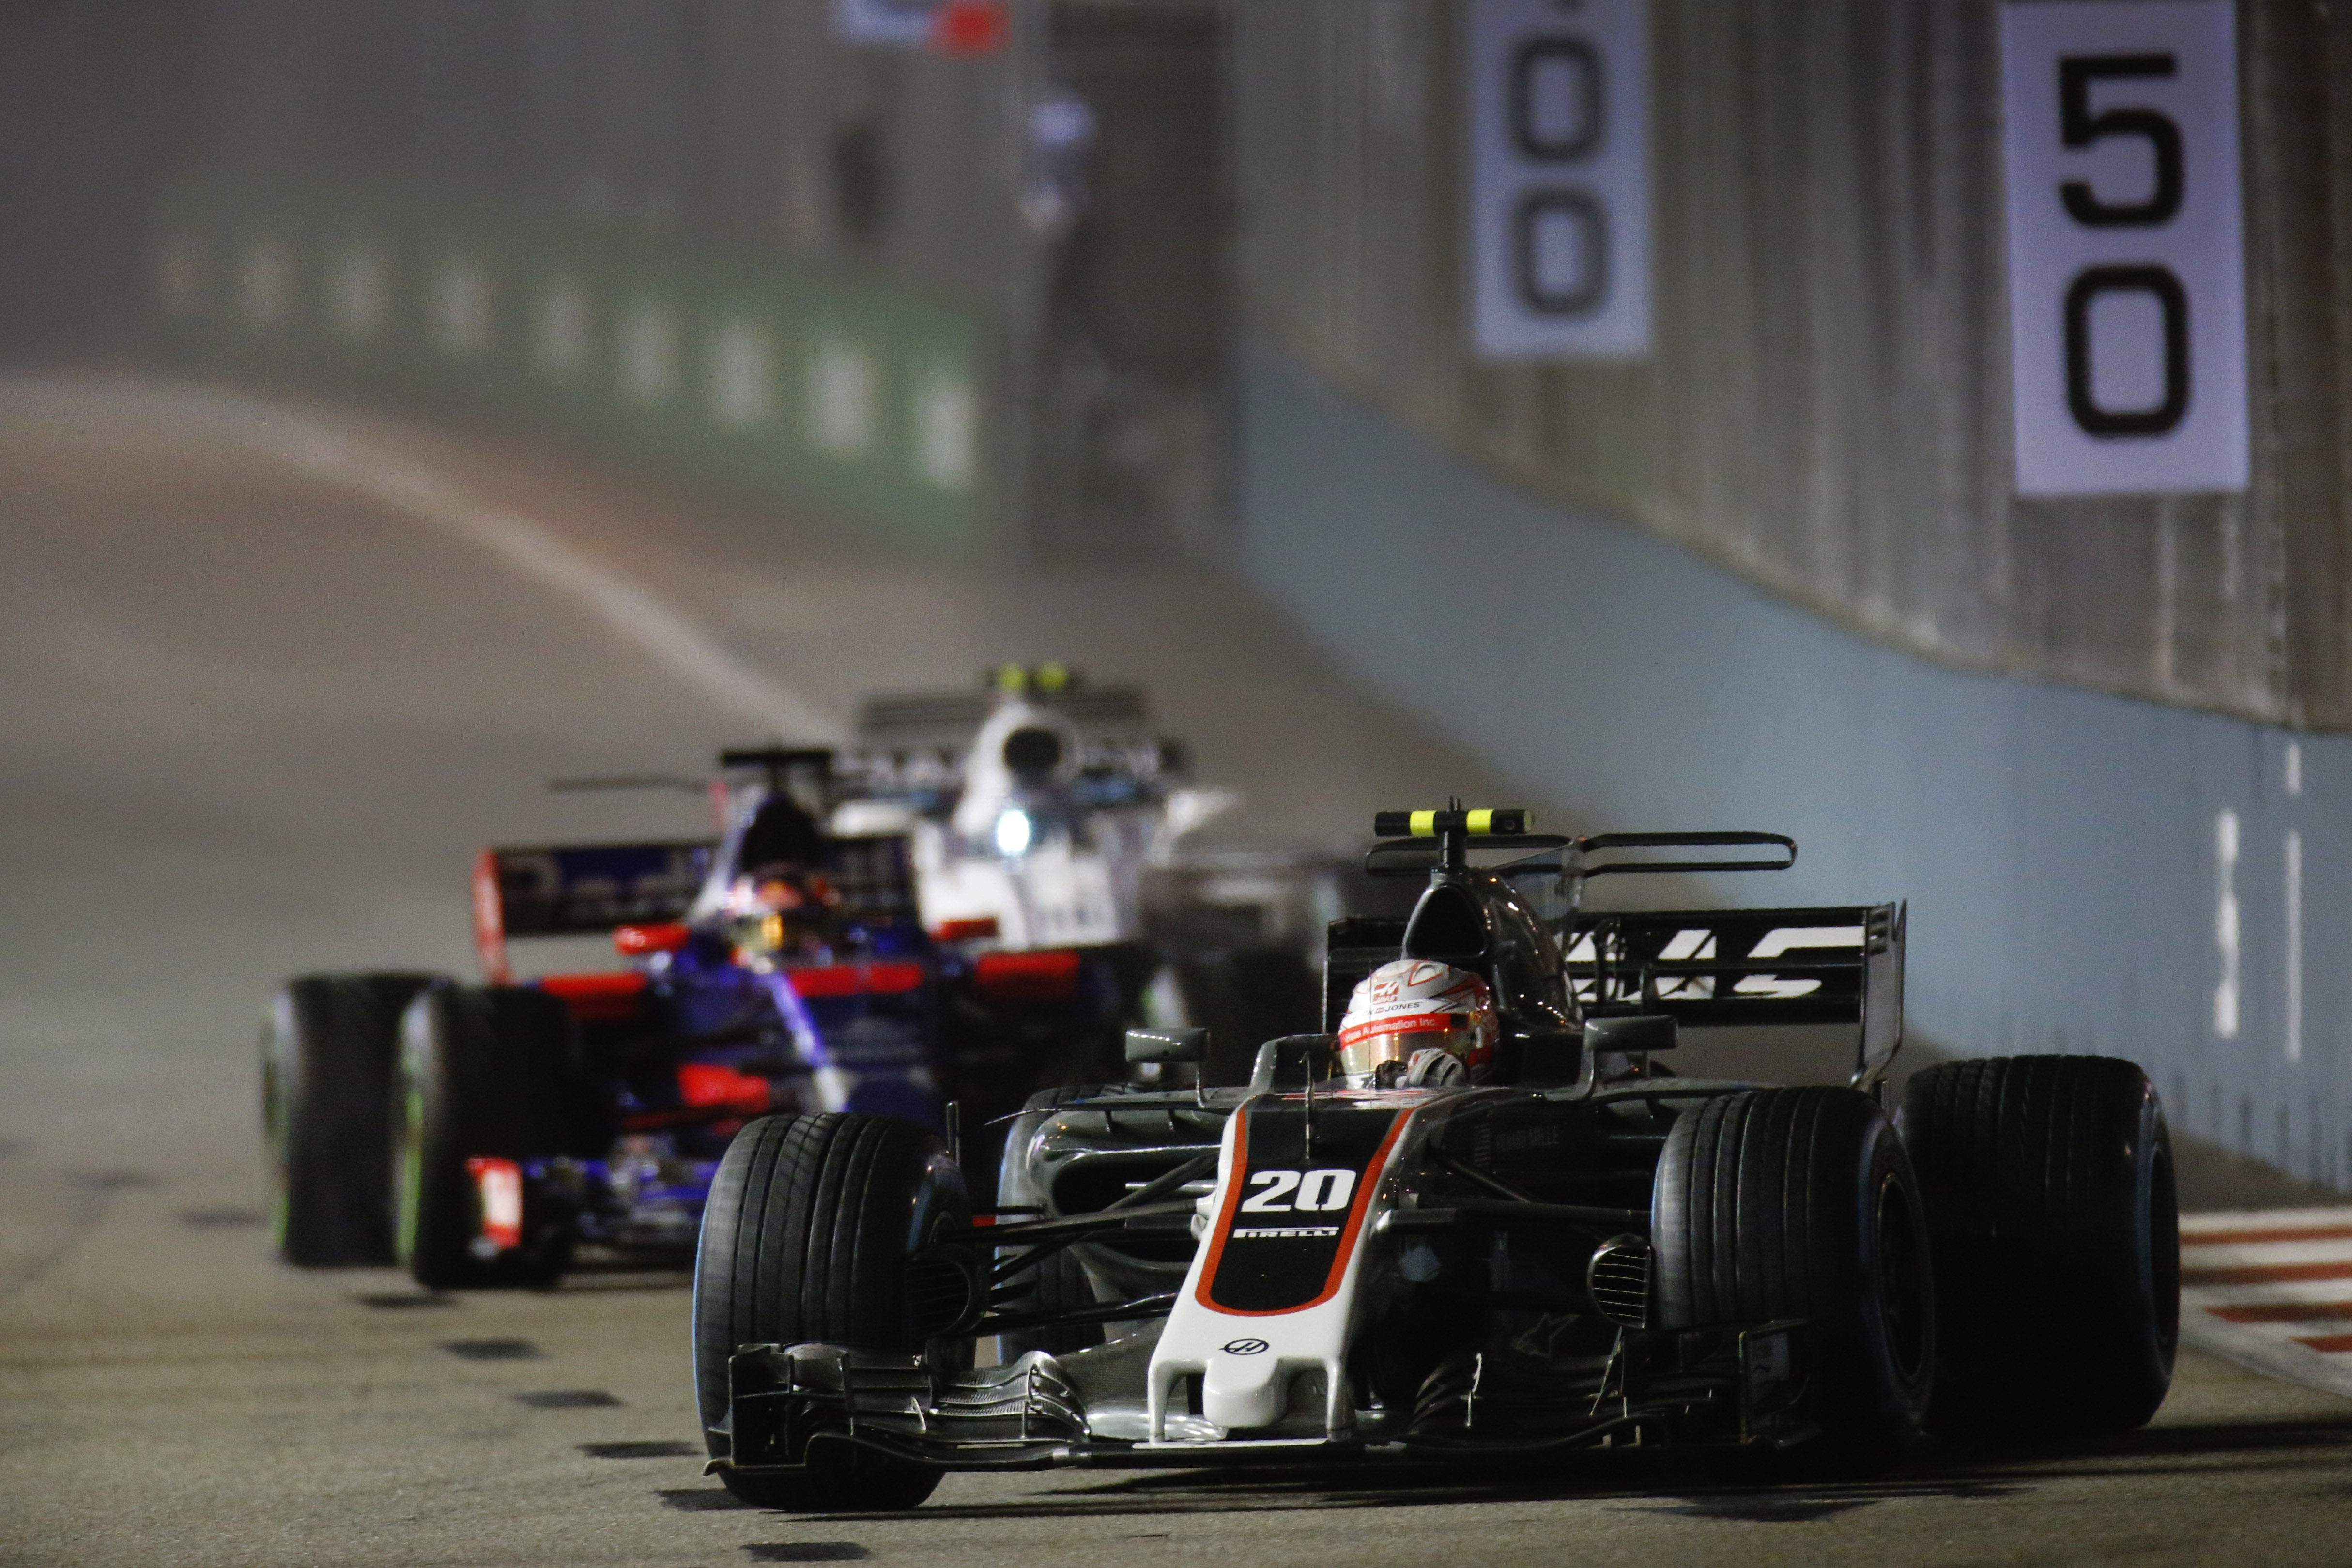 Kevin Magnussen leading a race